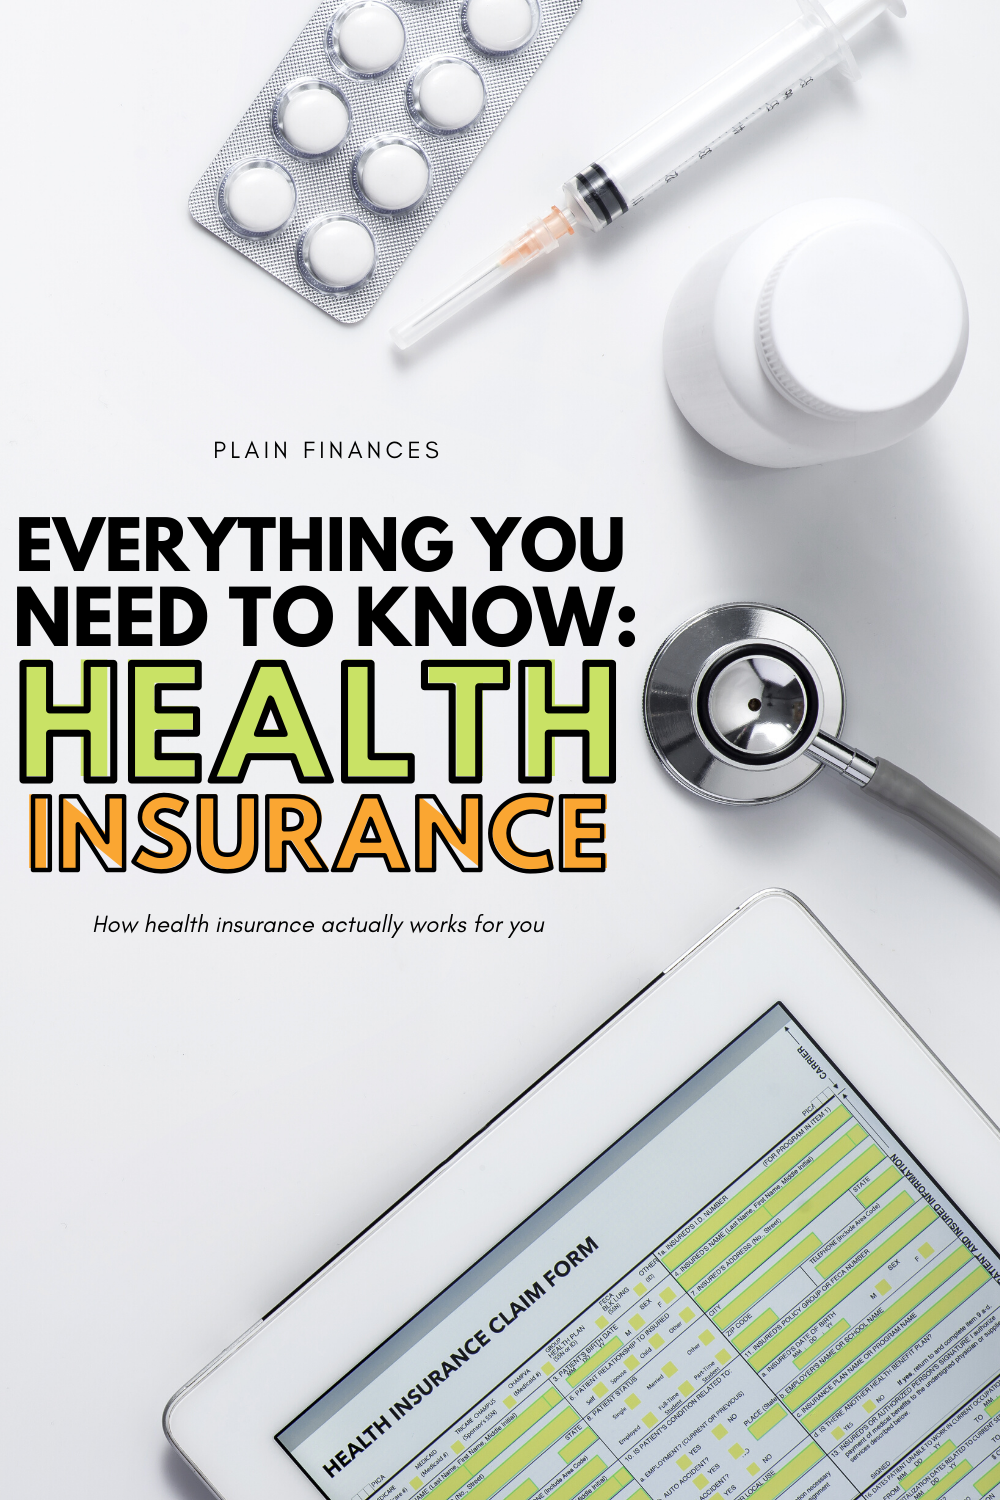 How Does Health Insurance Work Here's What You Need to